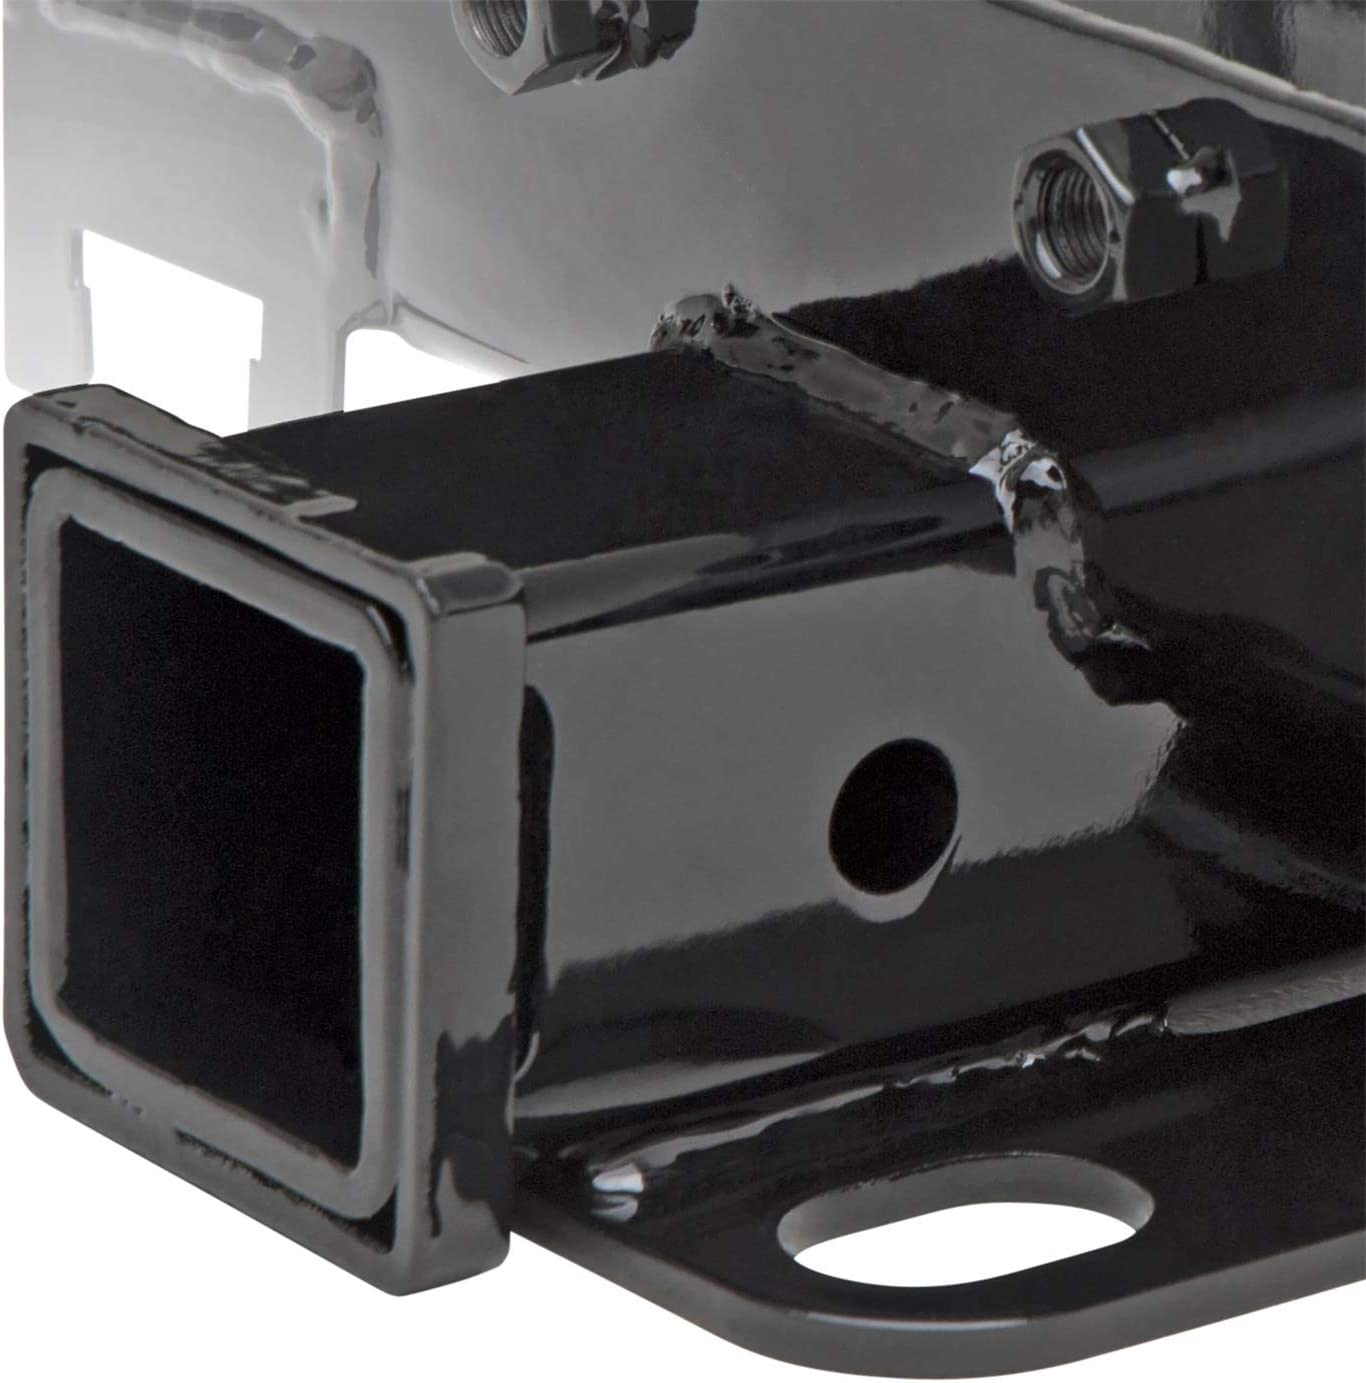 Smittybilt JH45 Receiver Hitch Sales of SALE items from Direct sale of manufacturer new works